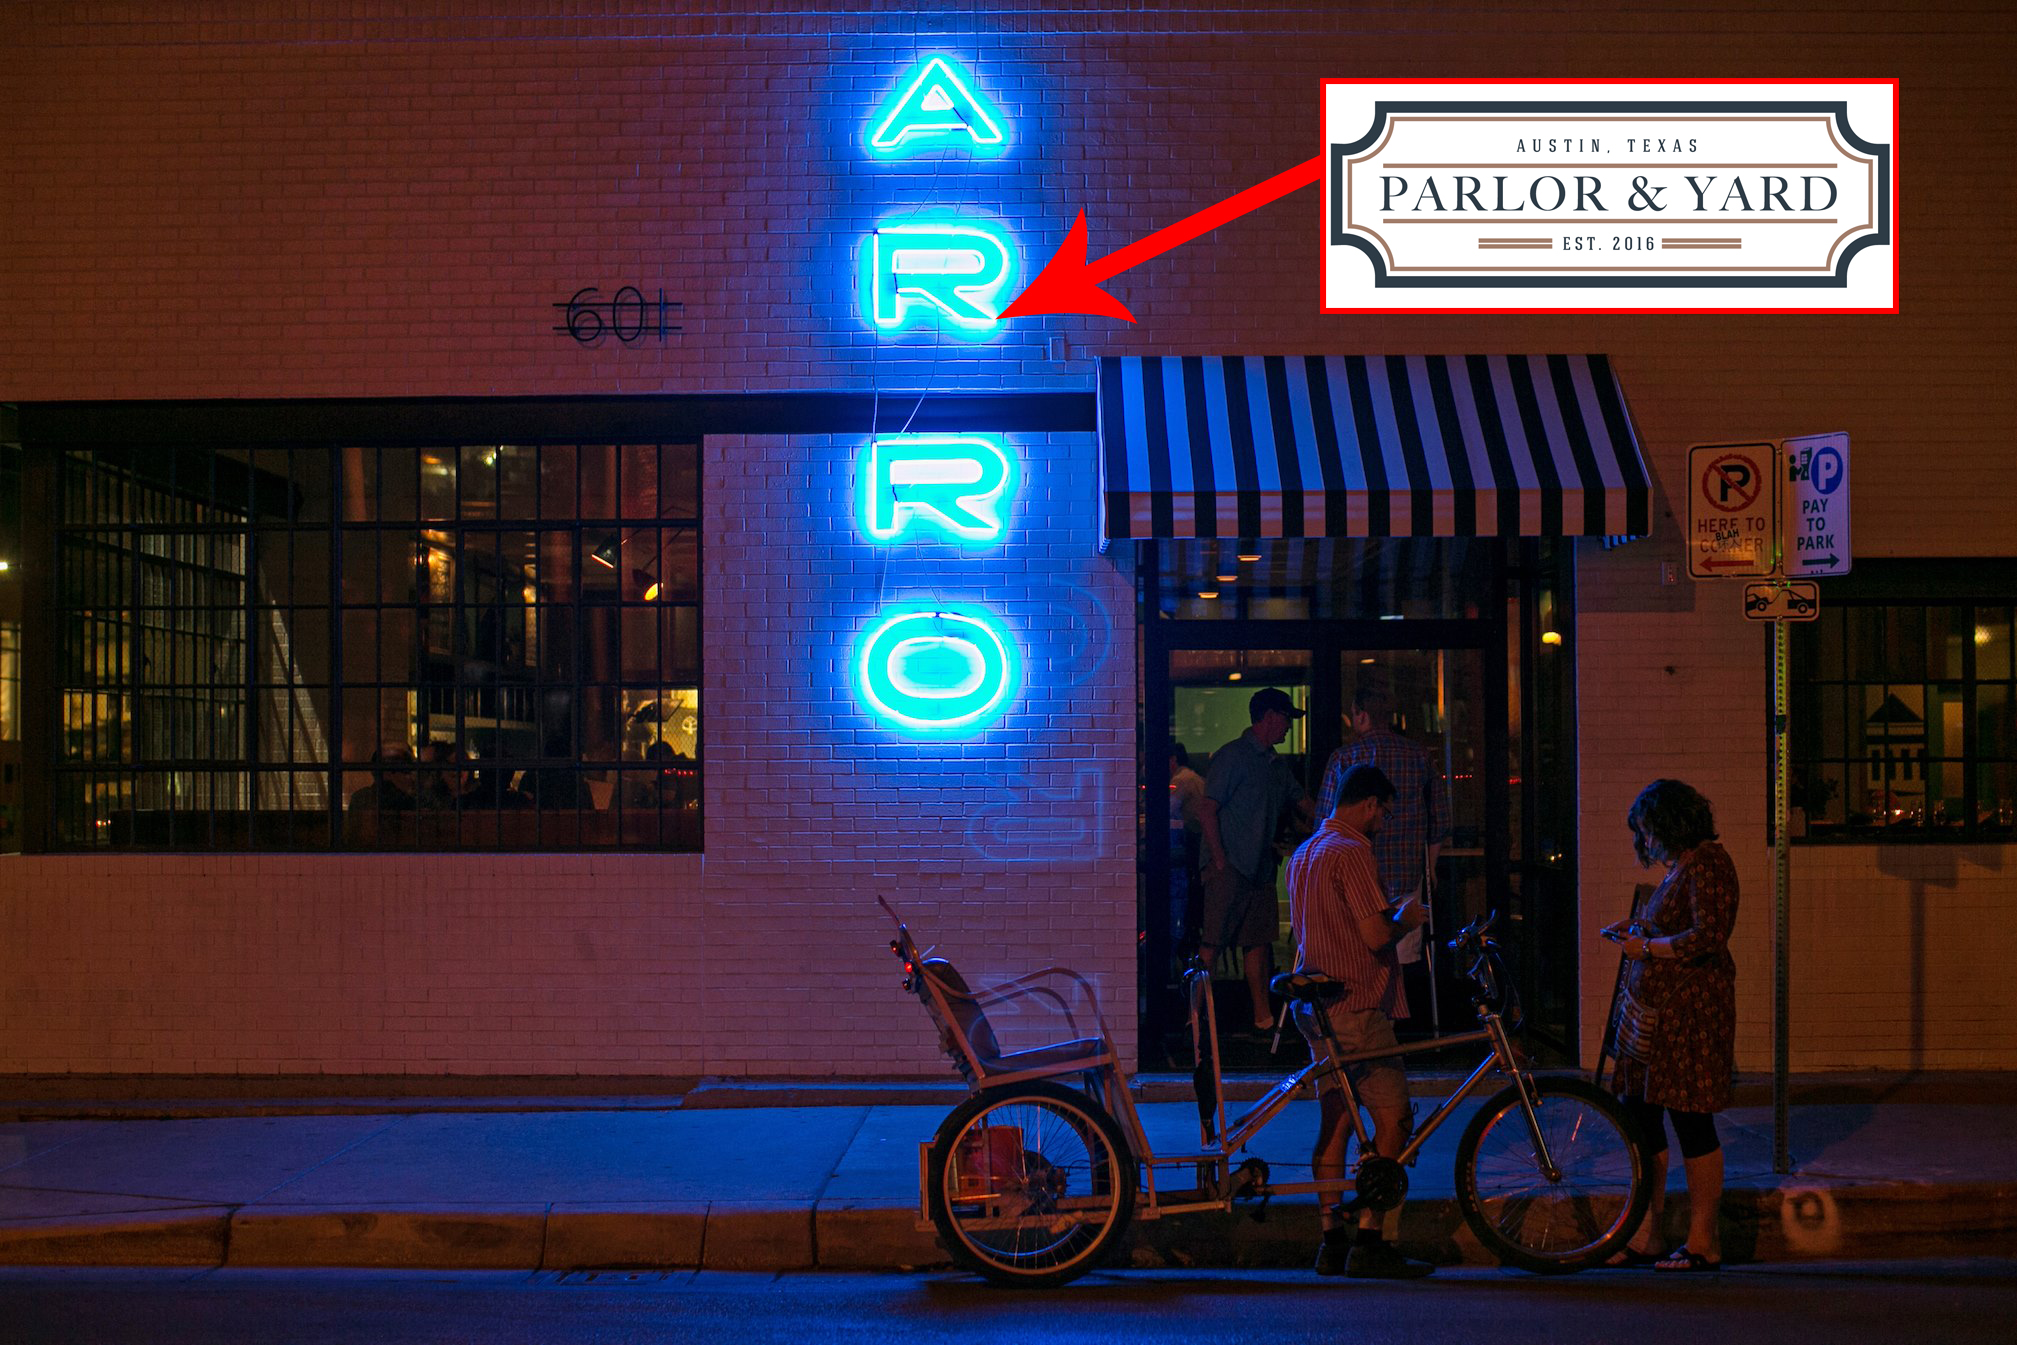 Parlor & Yard takes over Arro